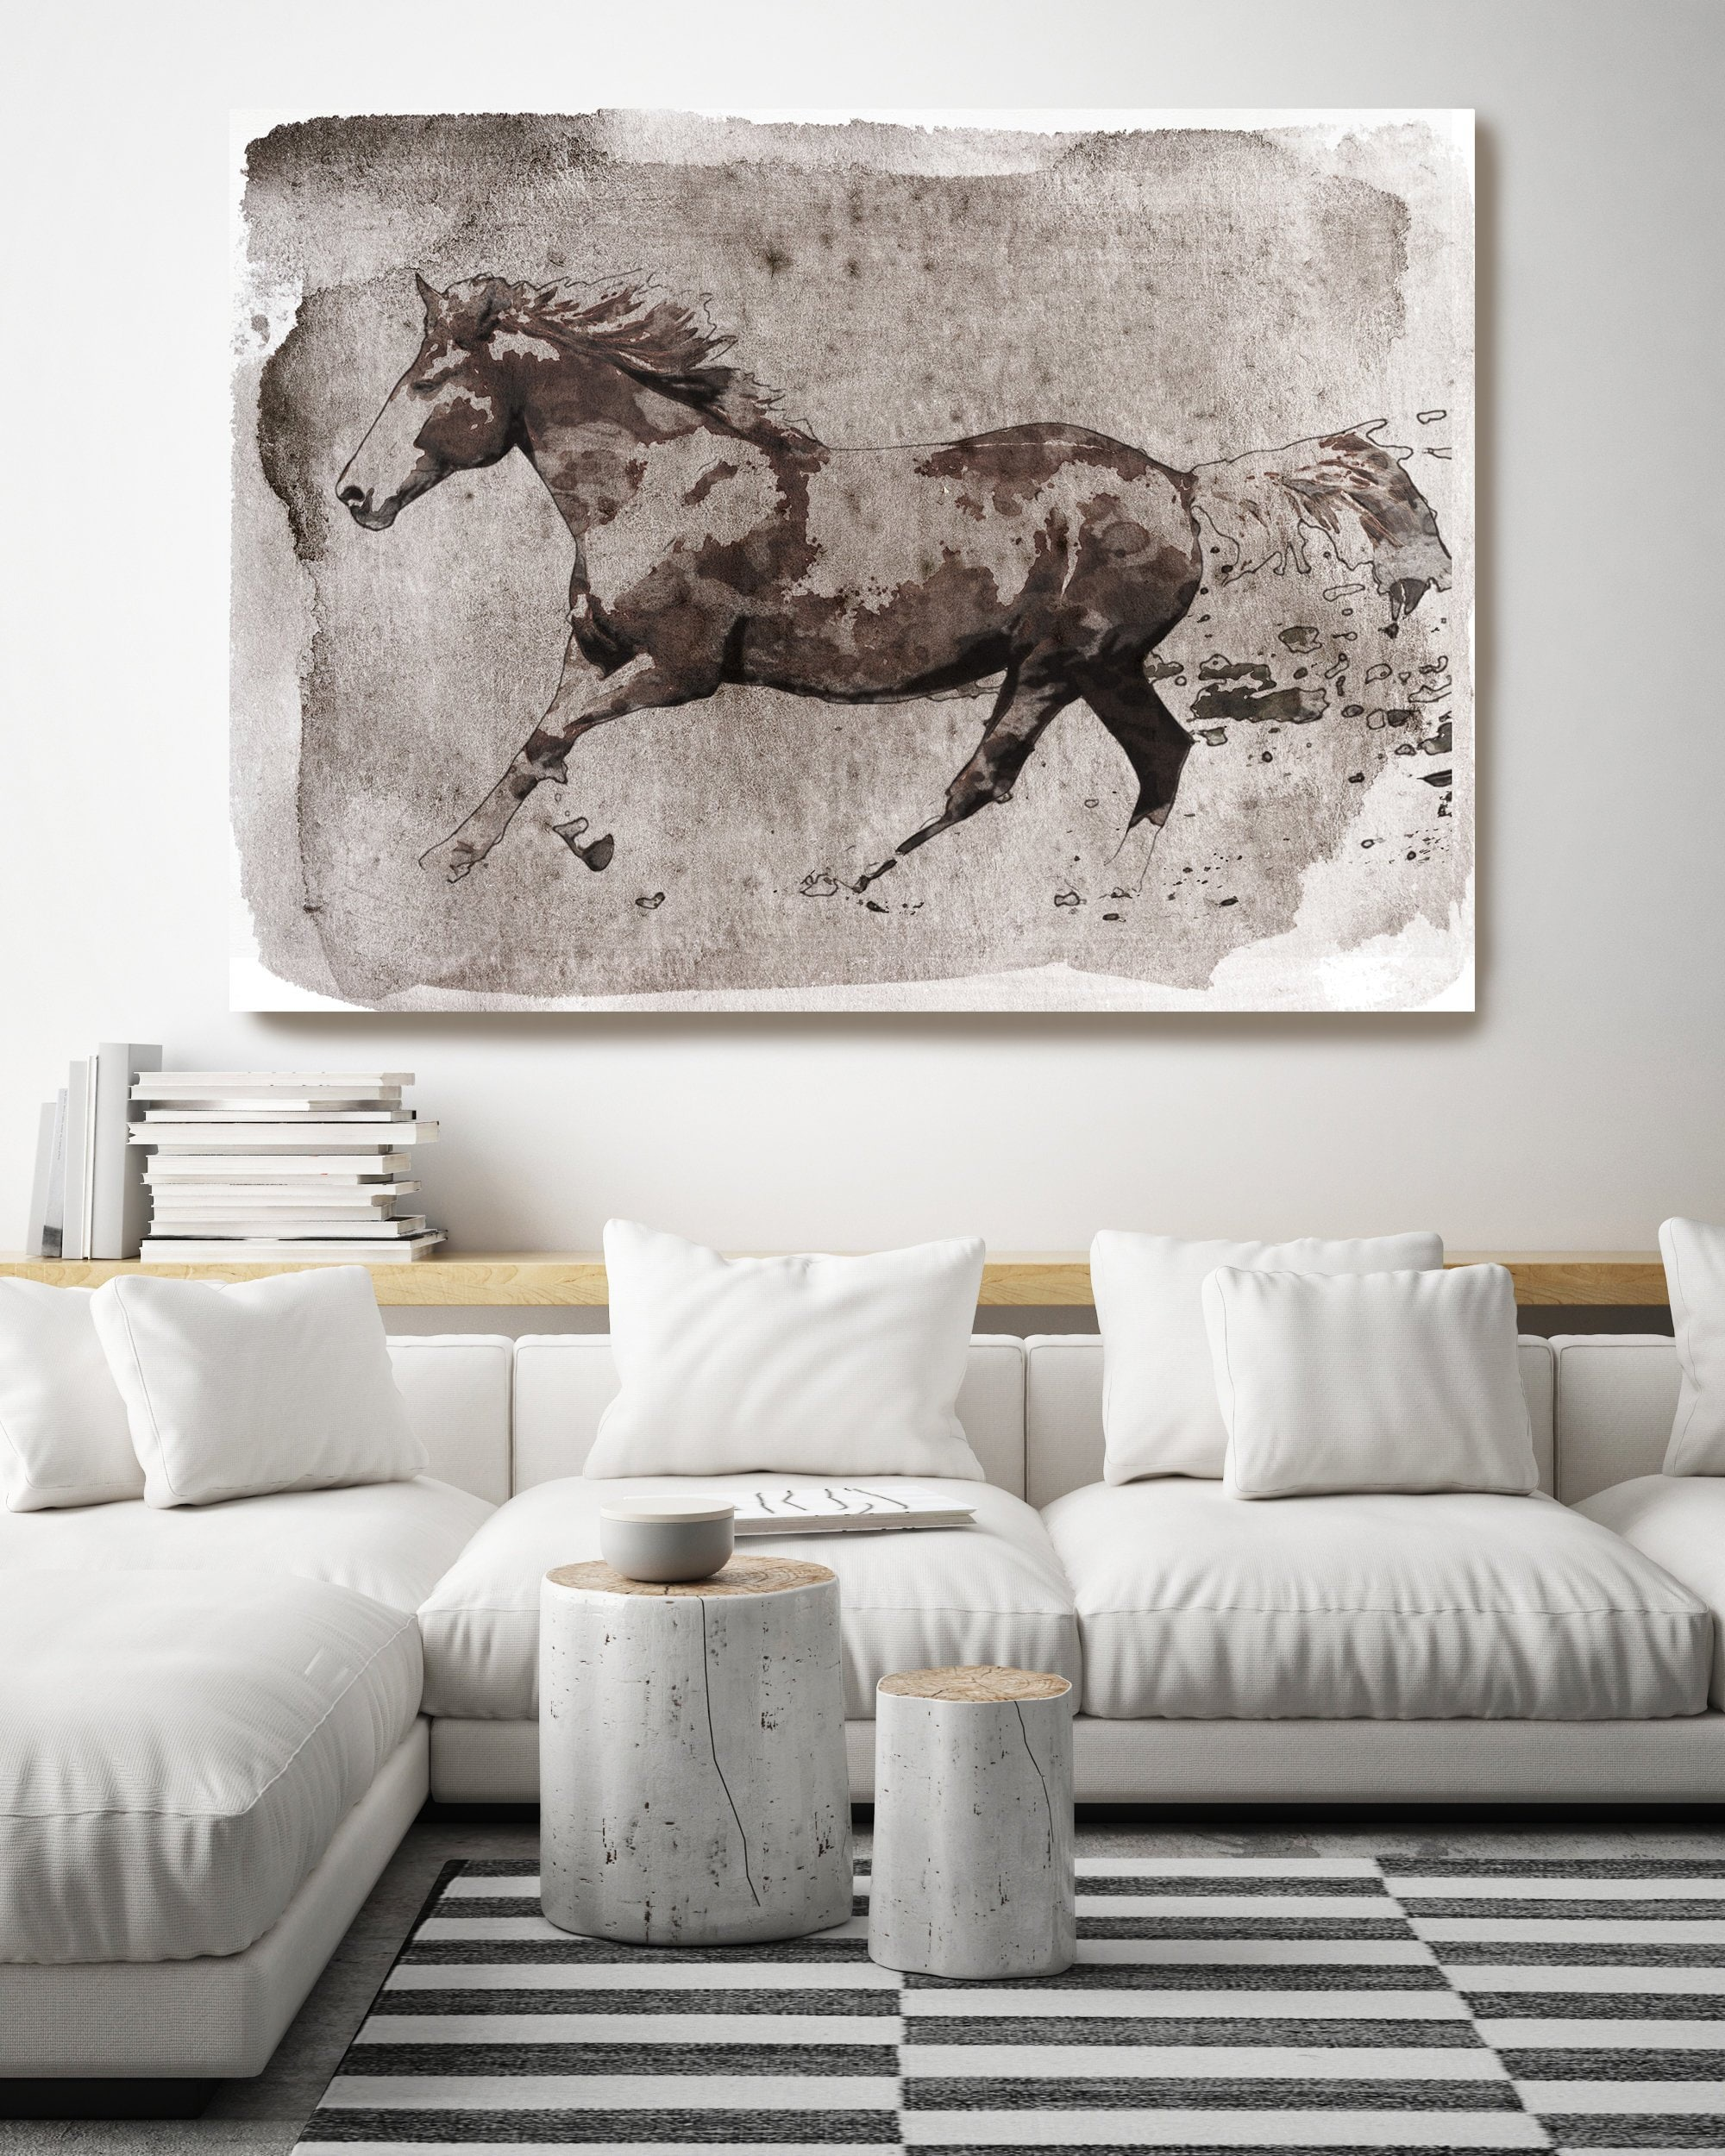 Home Garden Posters Prints Home Living Room For Art Wall Decor Running Horse Painting Printed On Canvas Magnumcap Com